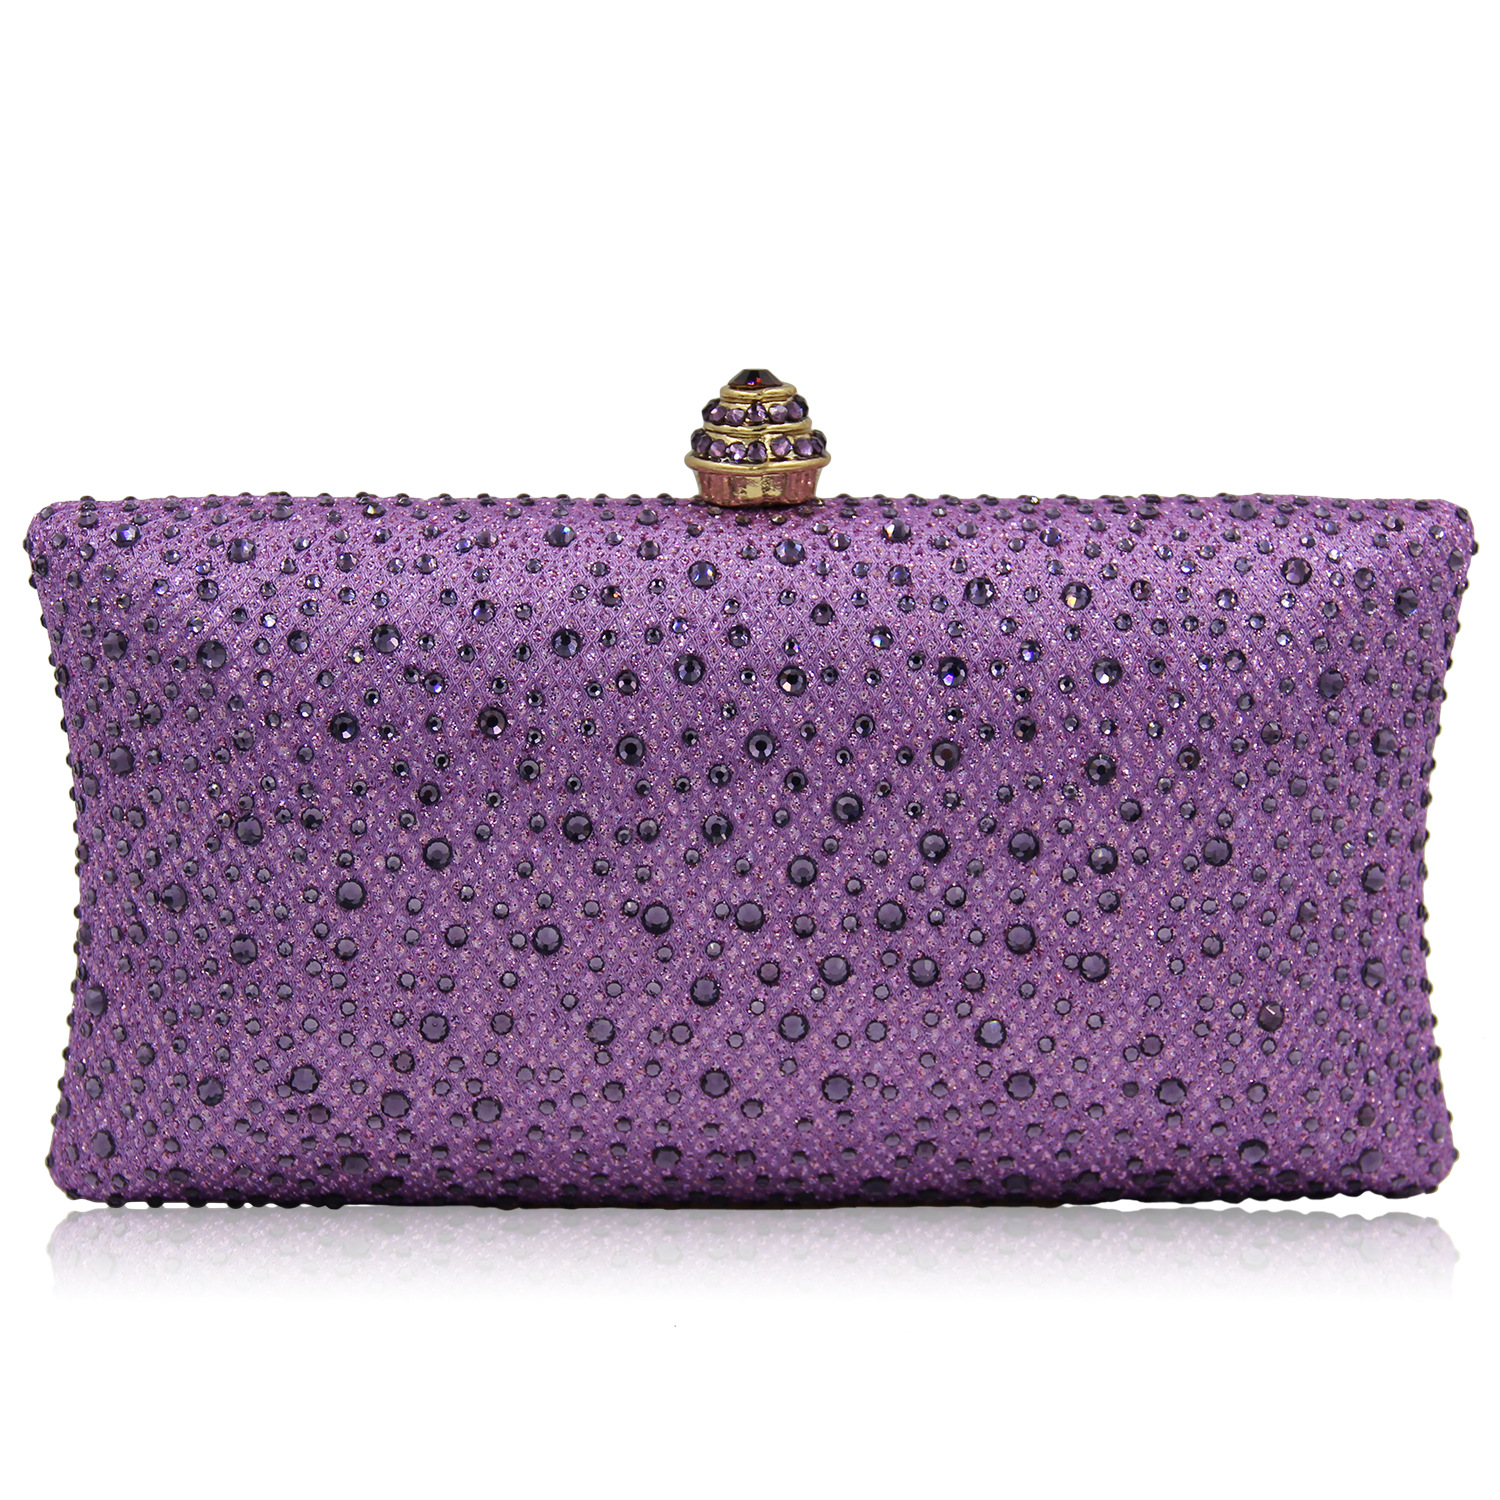 Compare Prices on Hand Clutch Purse- Online Shopping/Buy Low Price ...